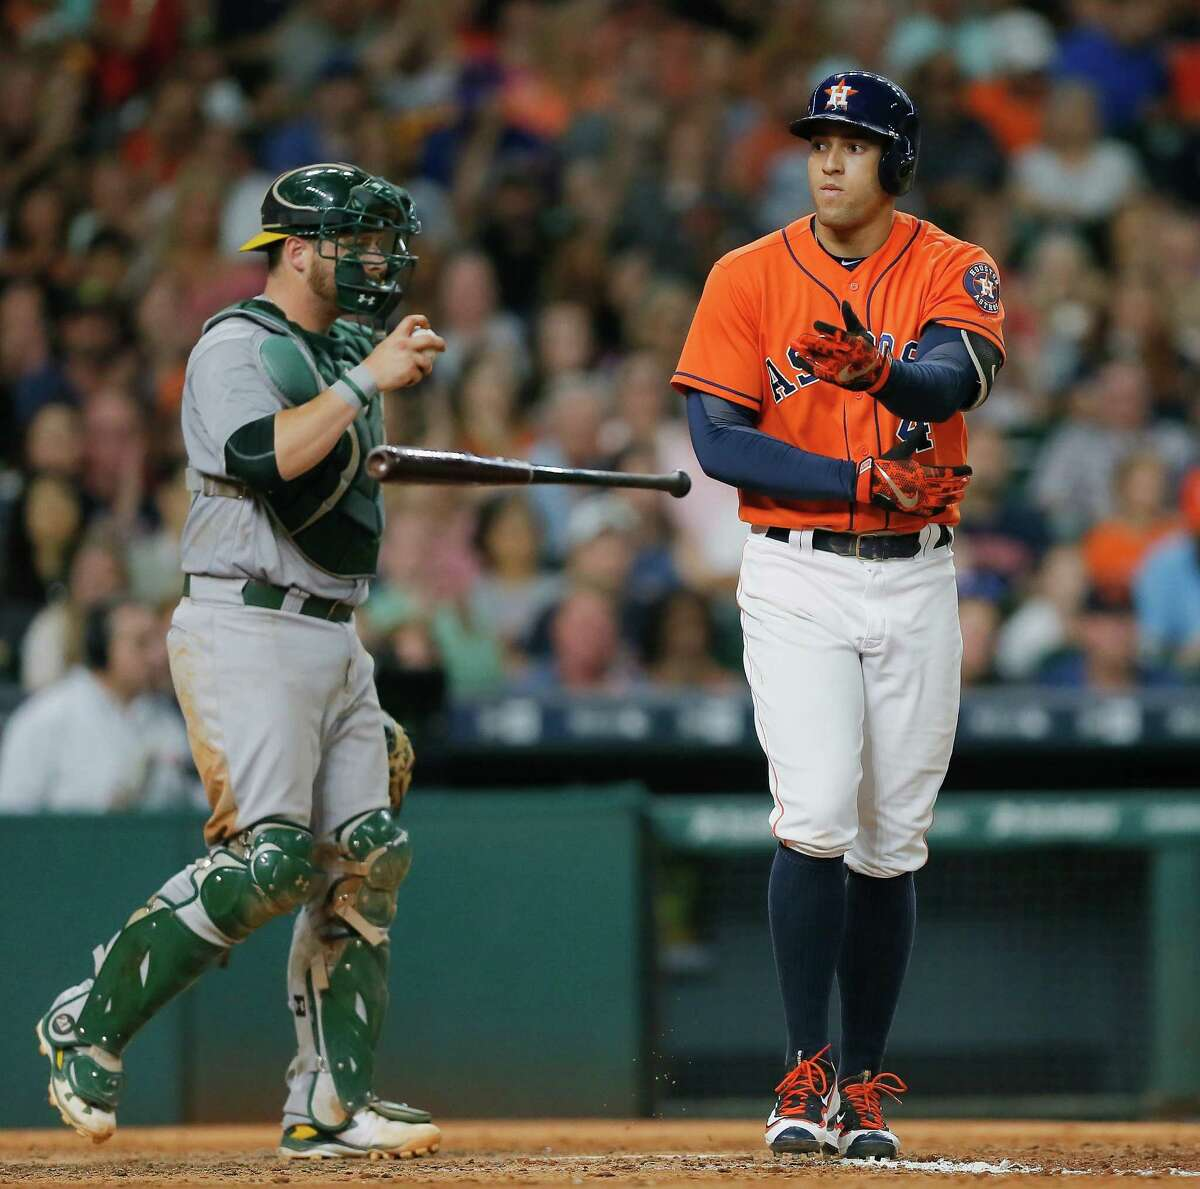 HOUSTON, TX - JULY 08: George Springer #4 of the Houston Astros walks in the fifth inning against the Oakland Athletics at Minute Maid Park on July 8, 2016 in Houston, Texas.